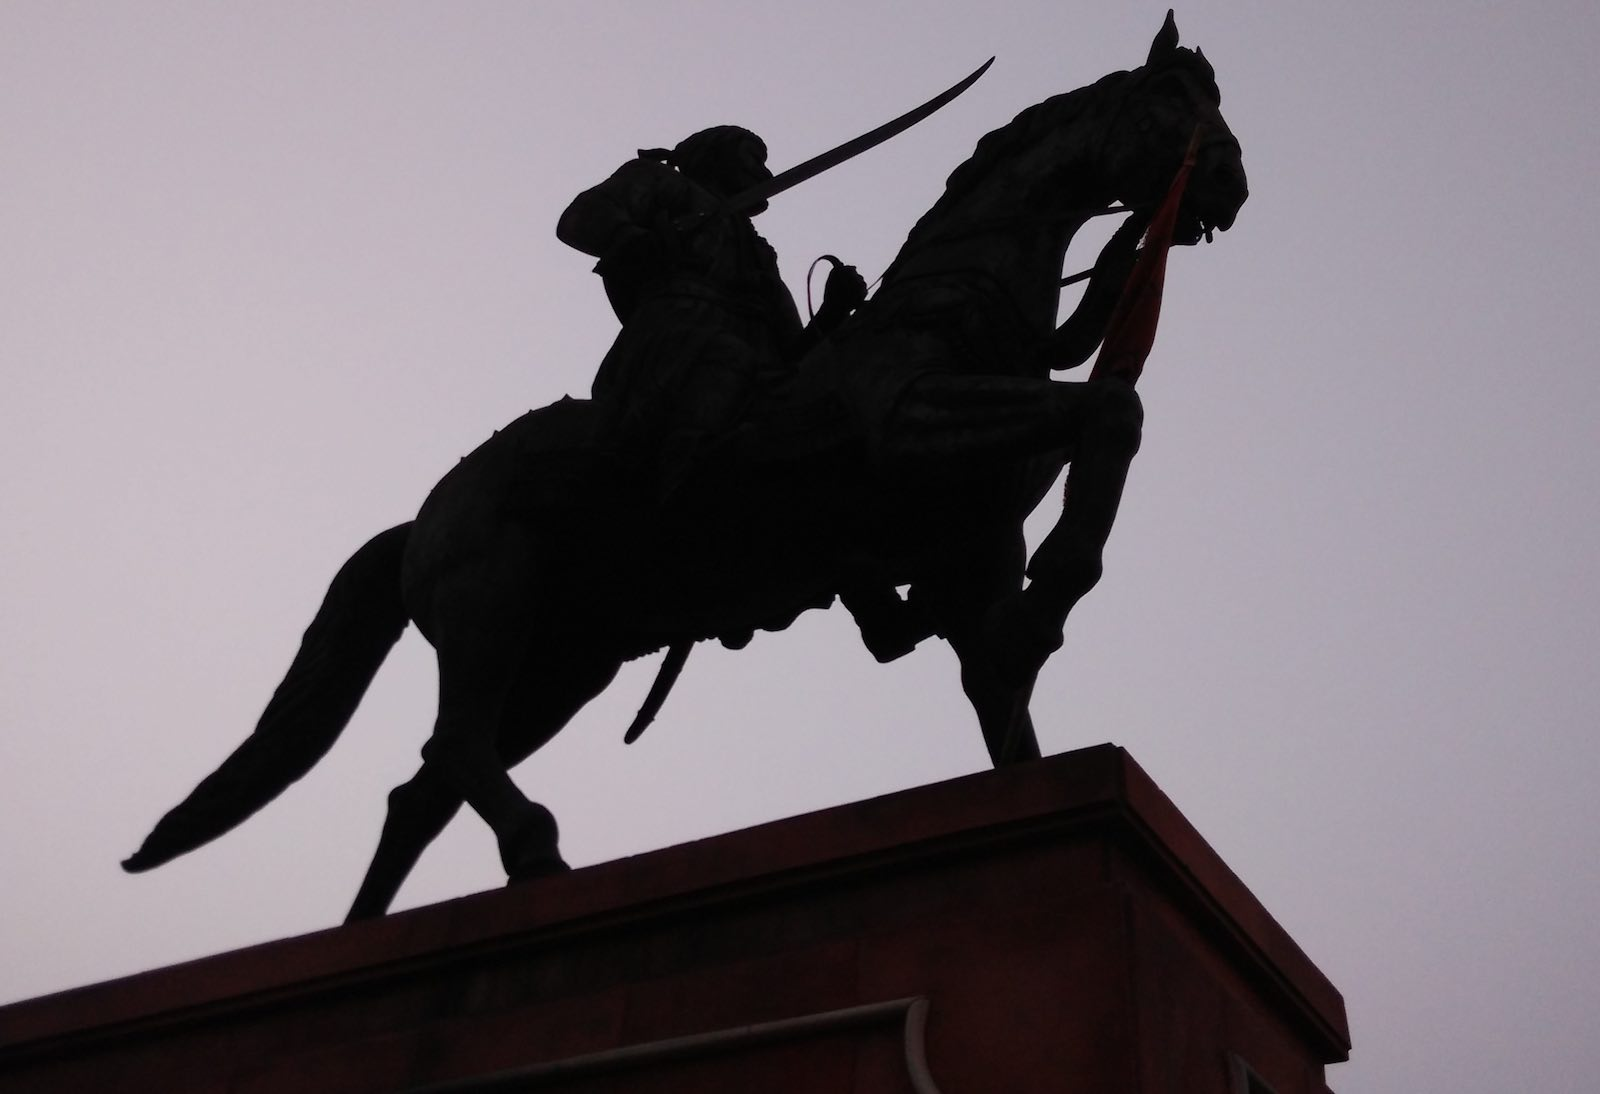 An existing statue of Shivaji Maharaj in Agra, similar in style to the much larger version planned off the coast of Mumbai (Photo: Wikimedia Commons)